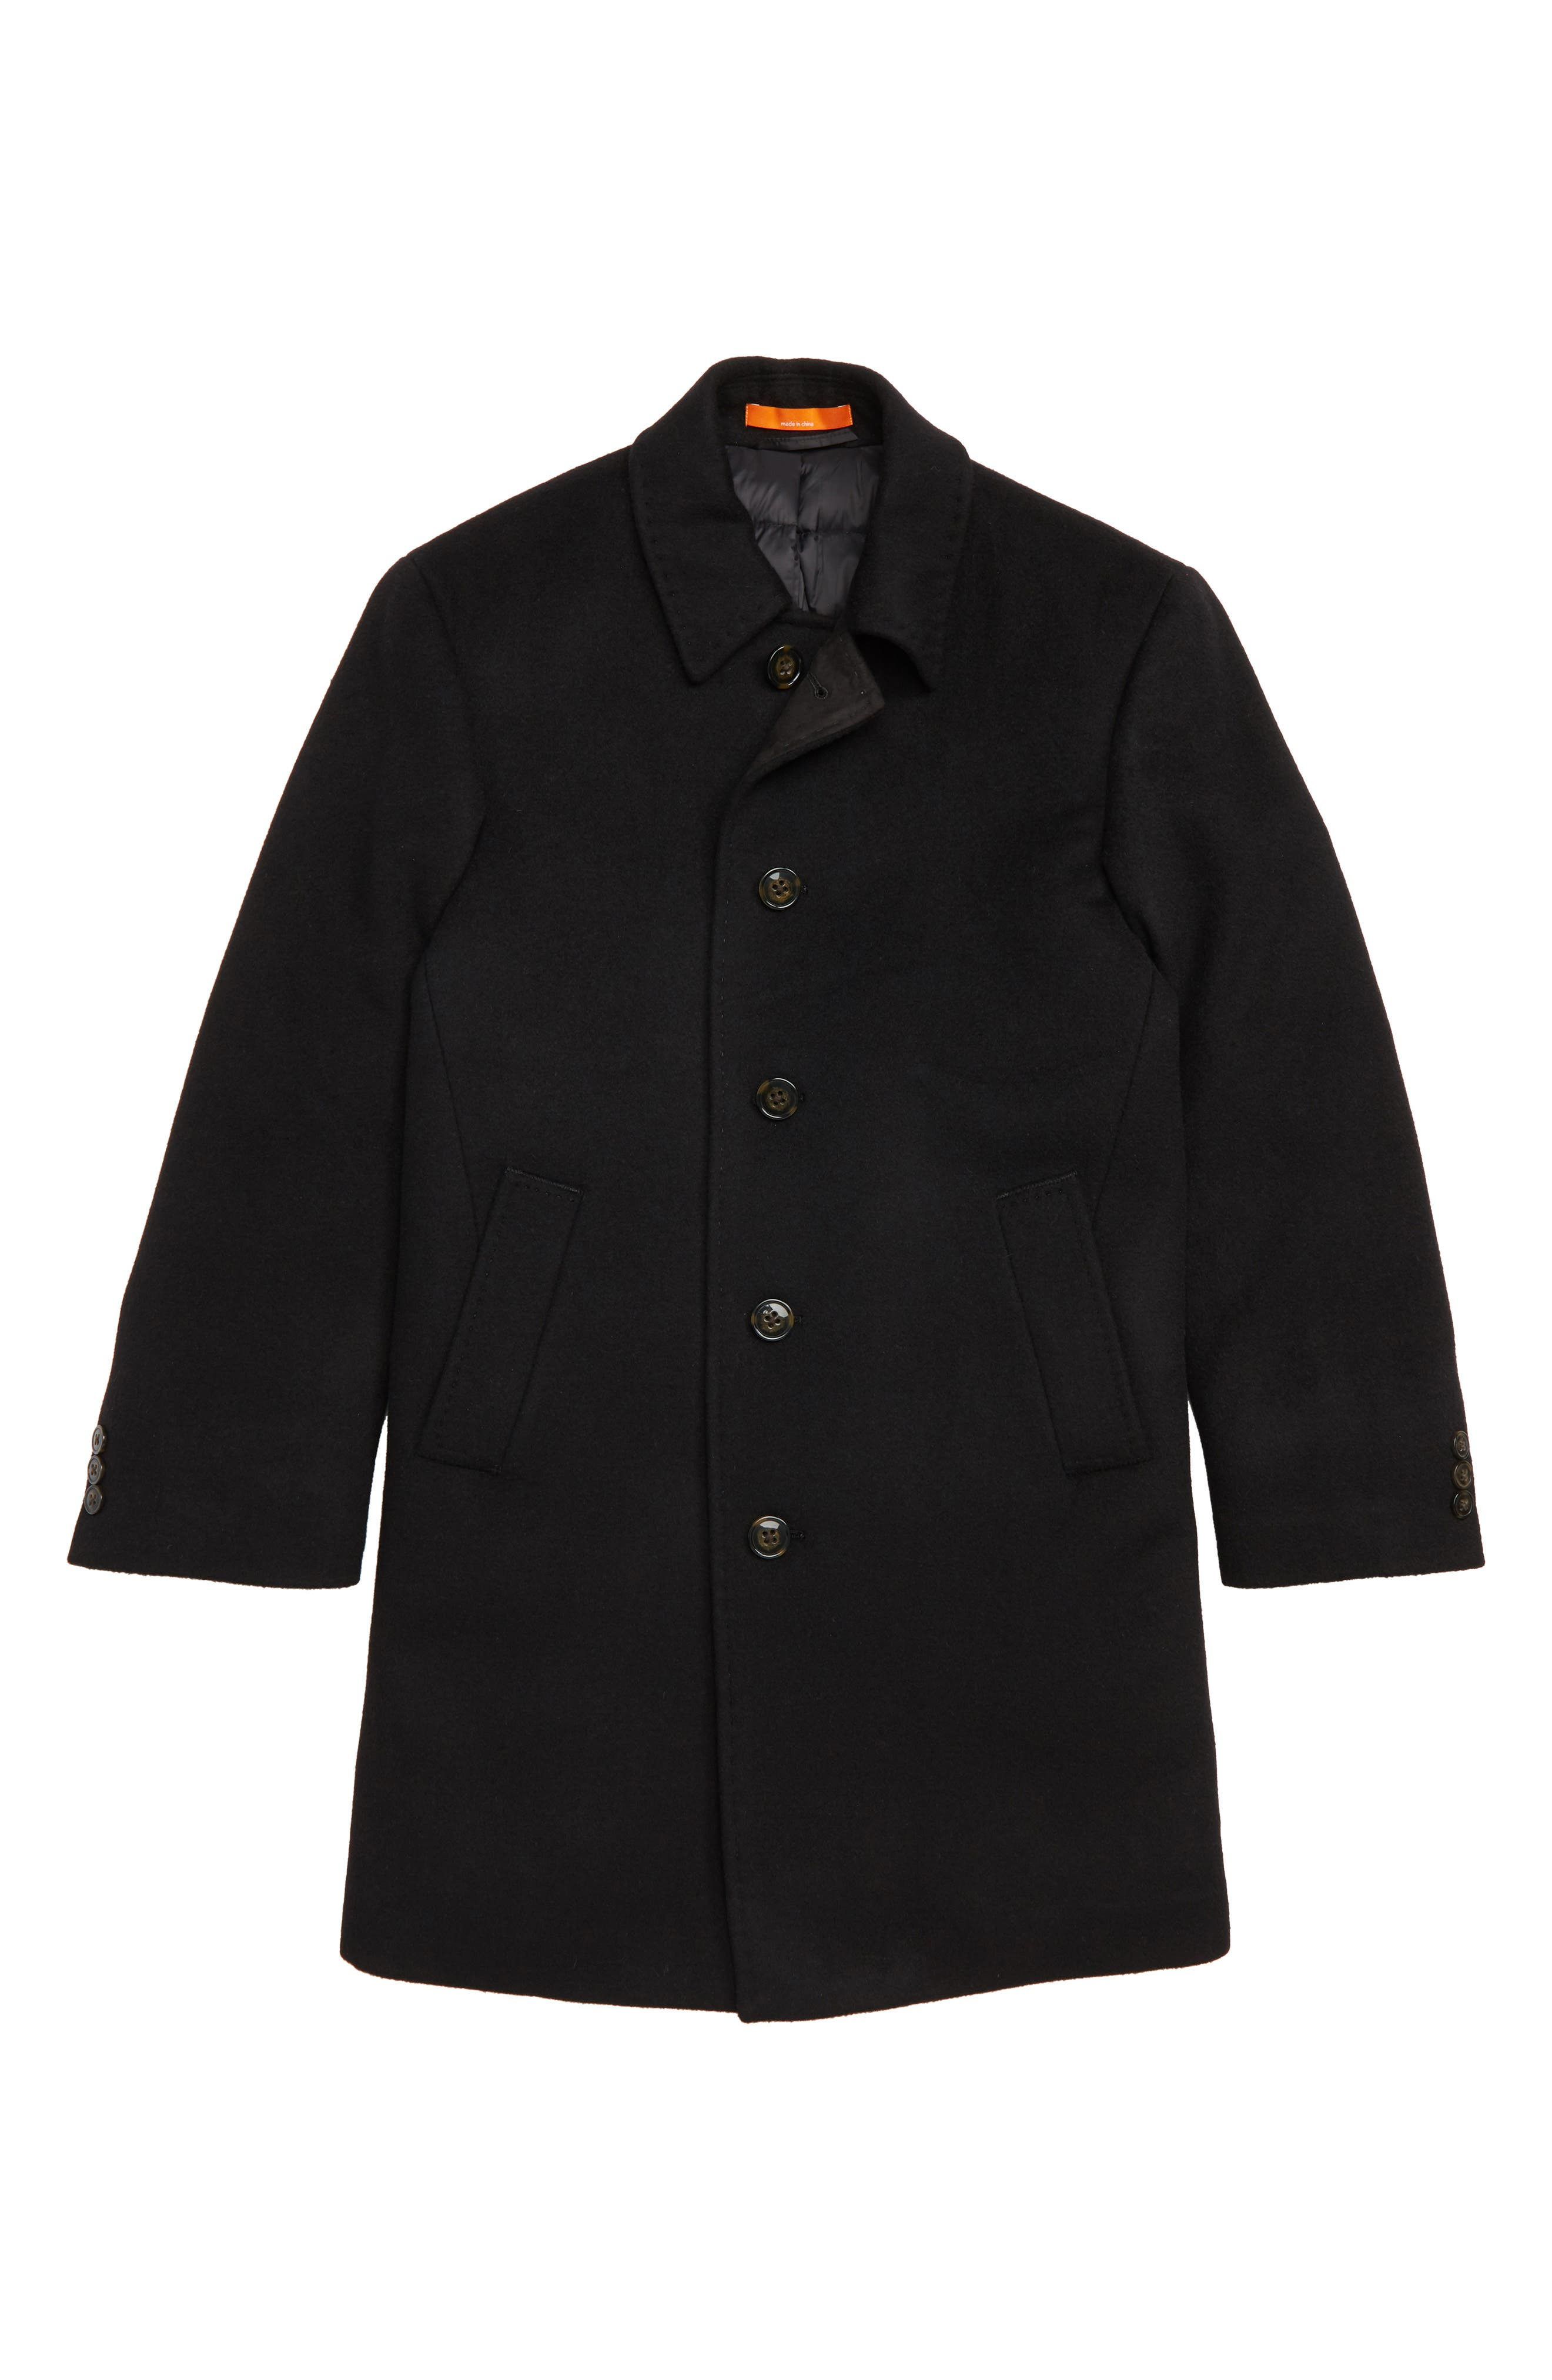 Down Insulated Wool Blend Coat,                             Main thumbnail 1, color,                             BLACK